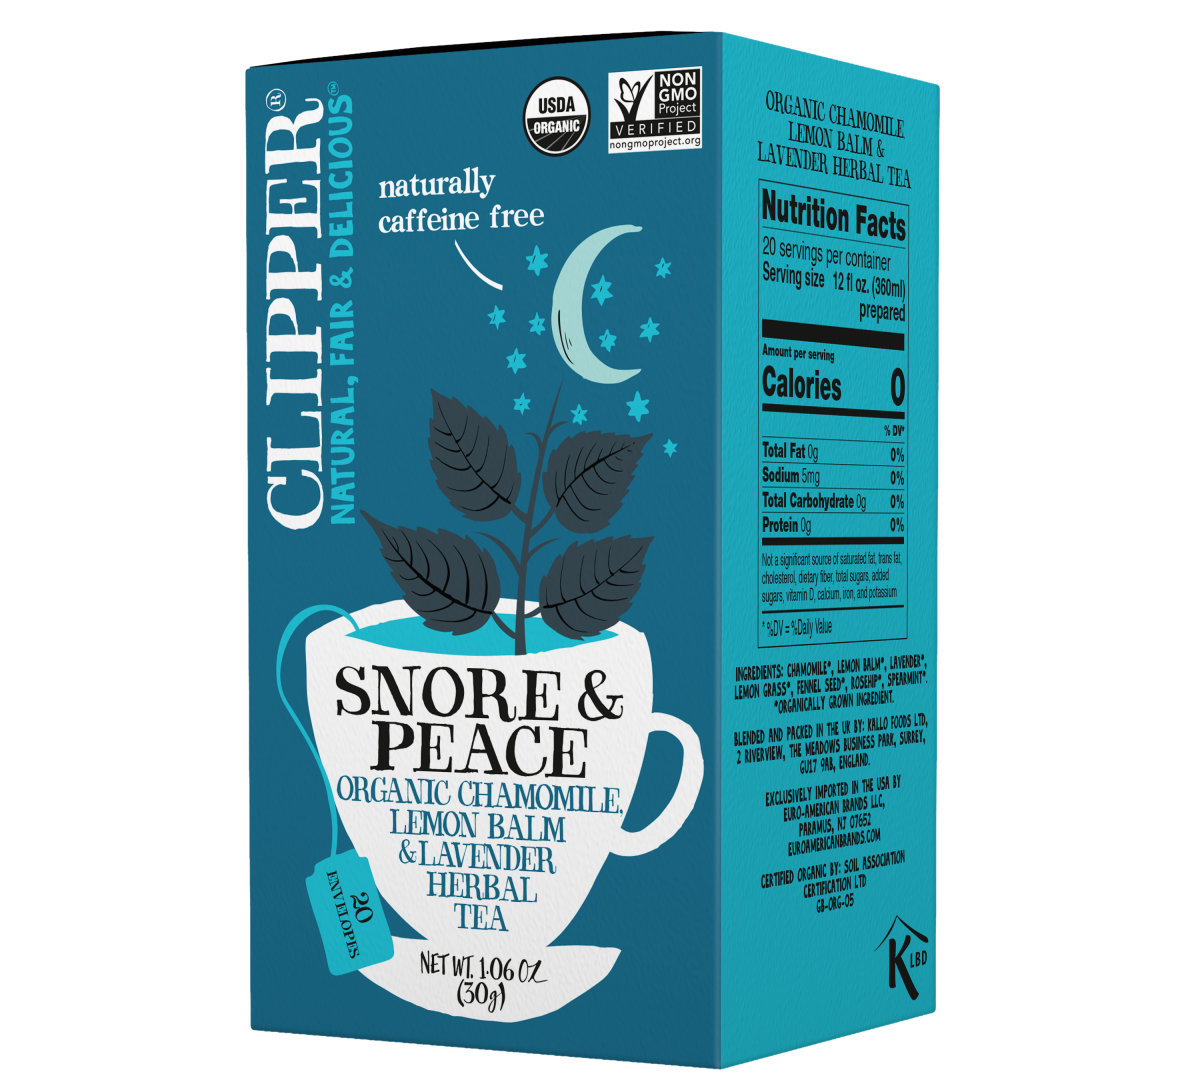 Snore and Peace organic herbal tea